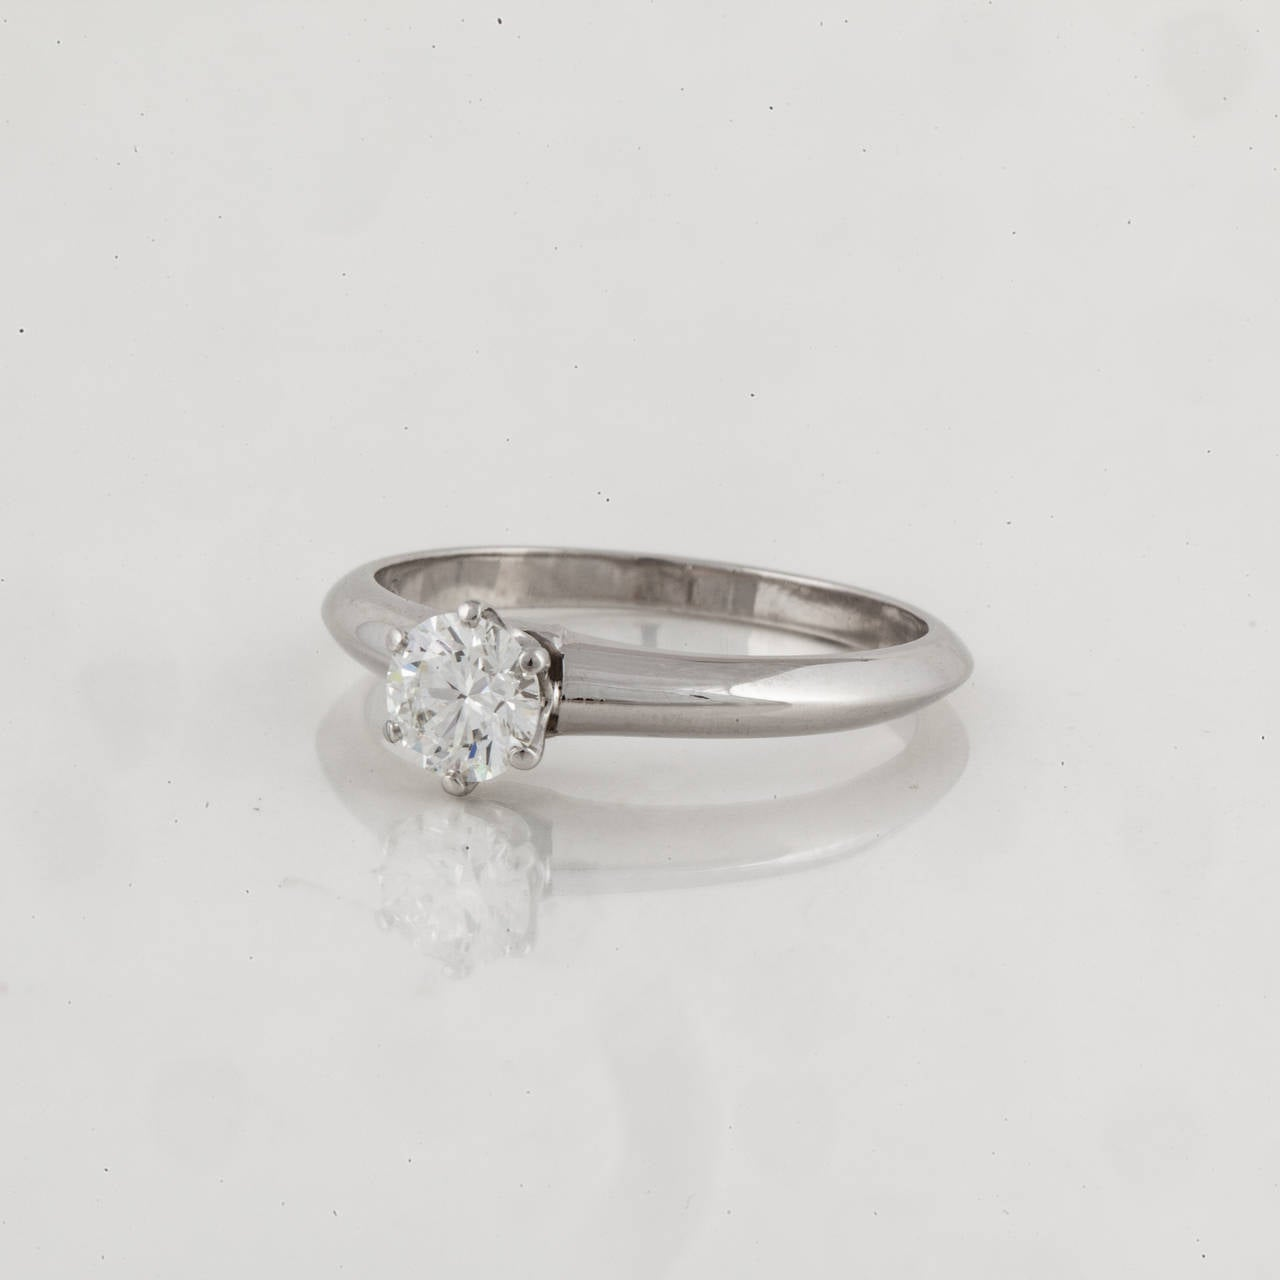 Tiffany & Co. Diamond Platinum Solitare Ring 2